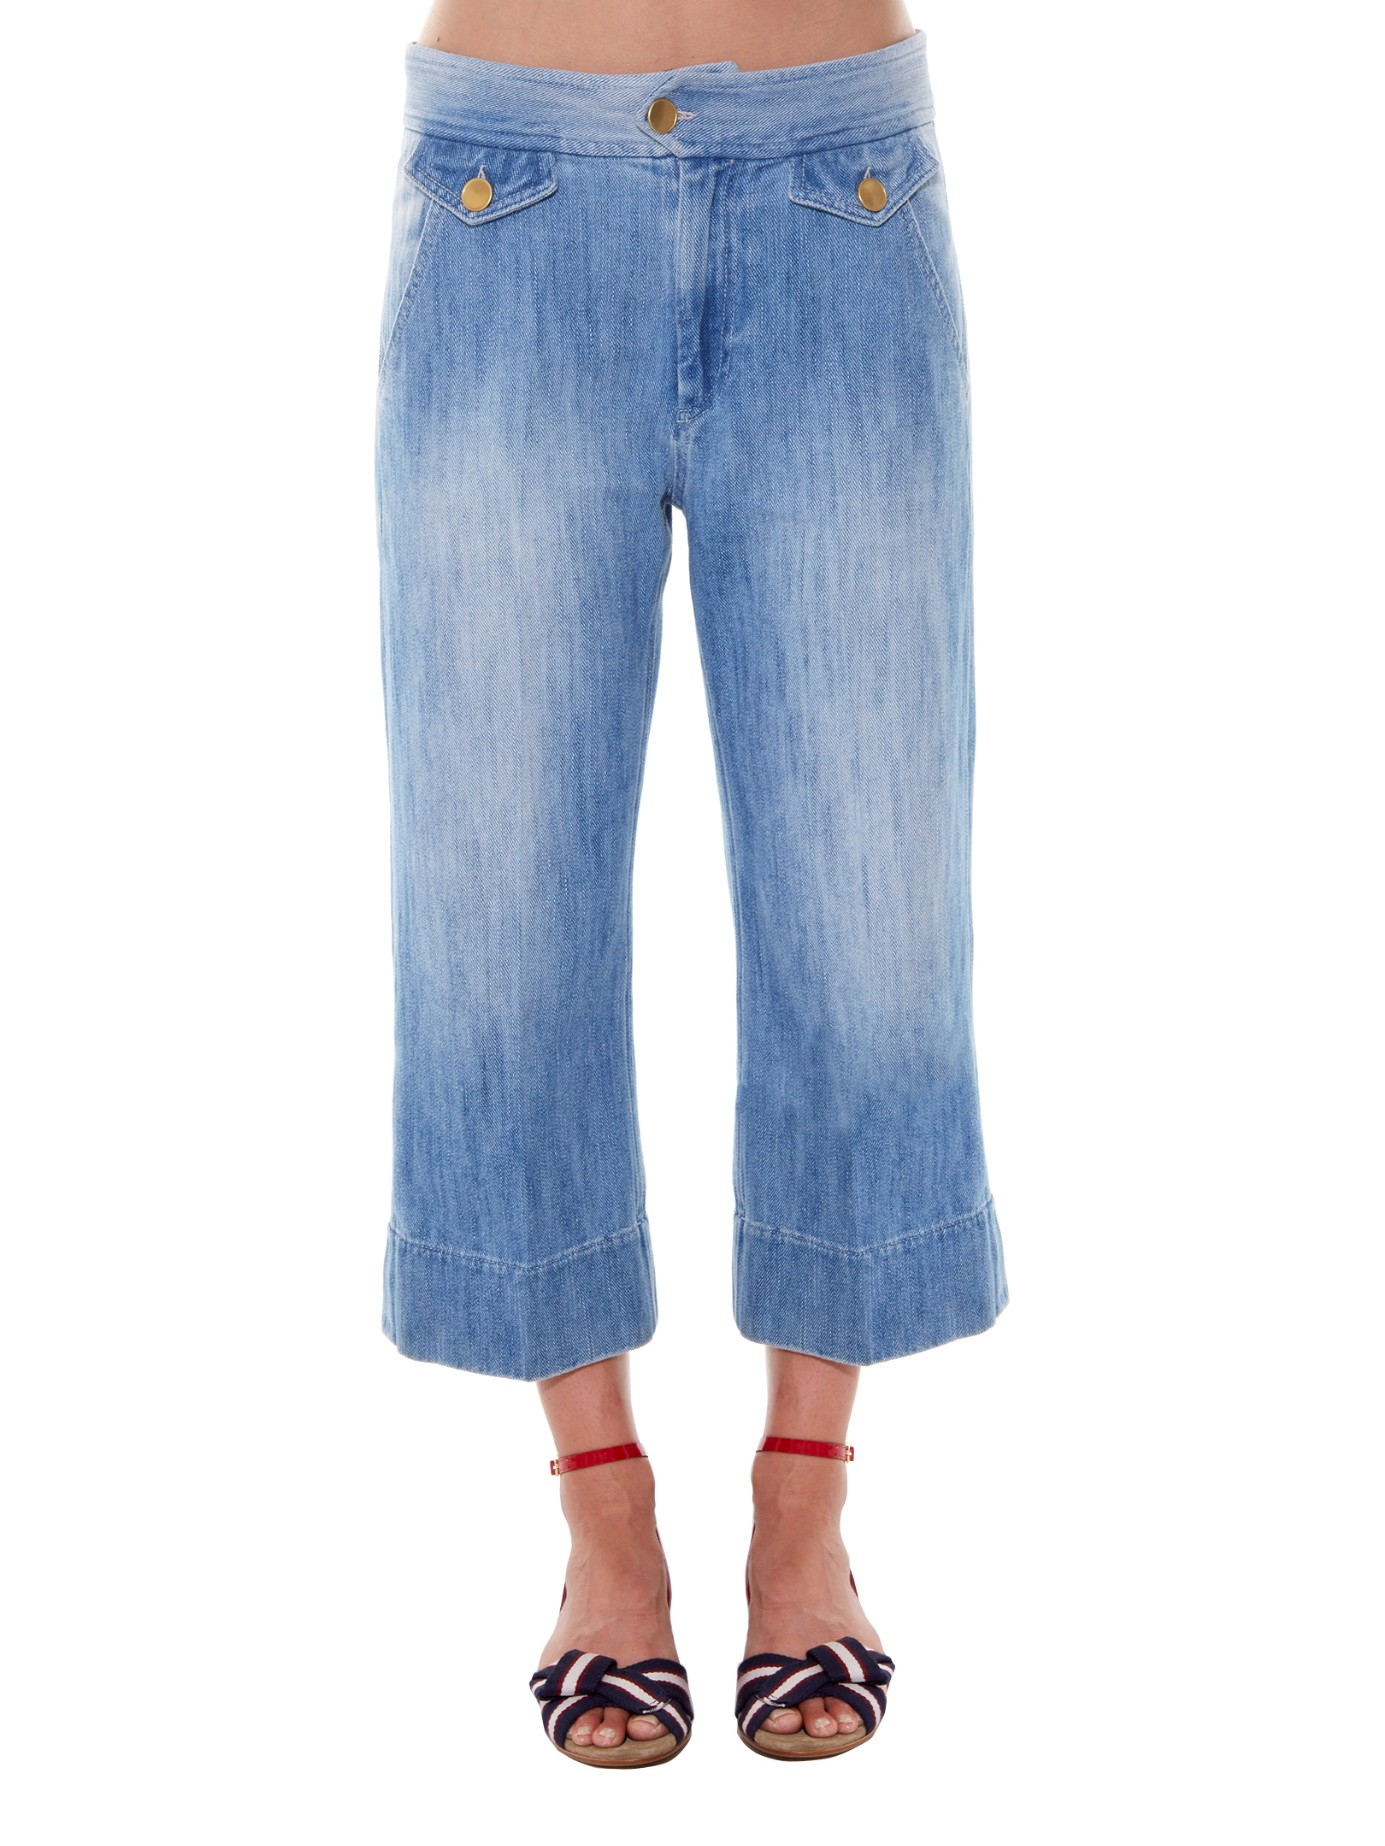 Étoile isabel marant Orsen Cropped Flared Jeans in Blue